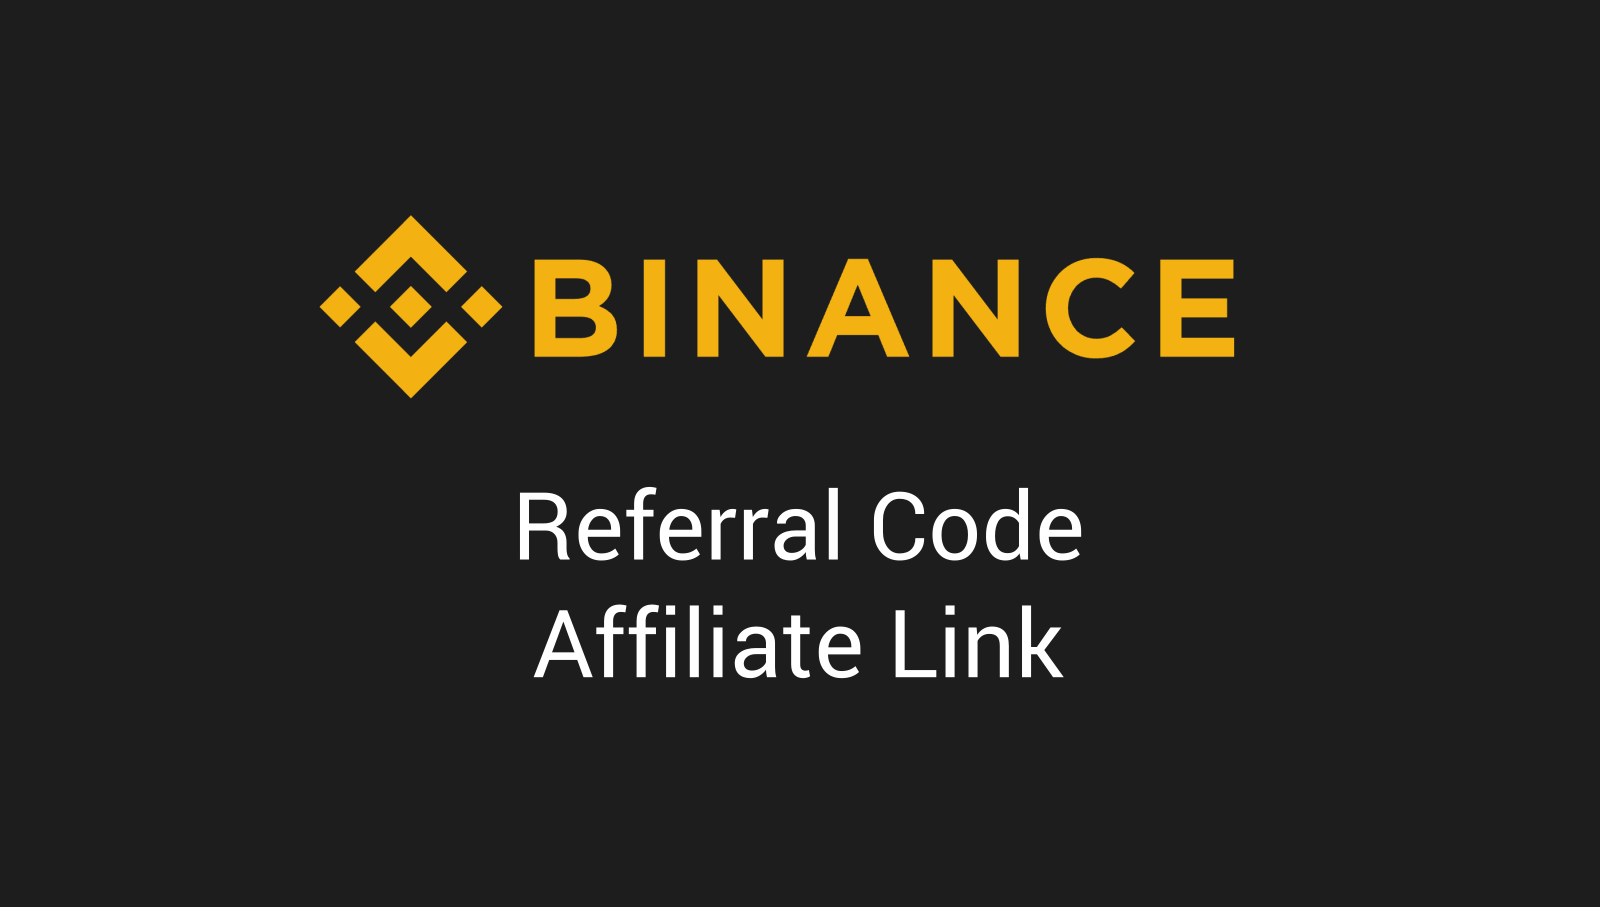 Binance Referral Code - Affiliate Link, wo finde ich ihn?